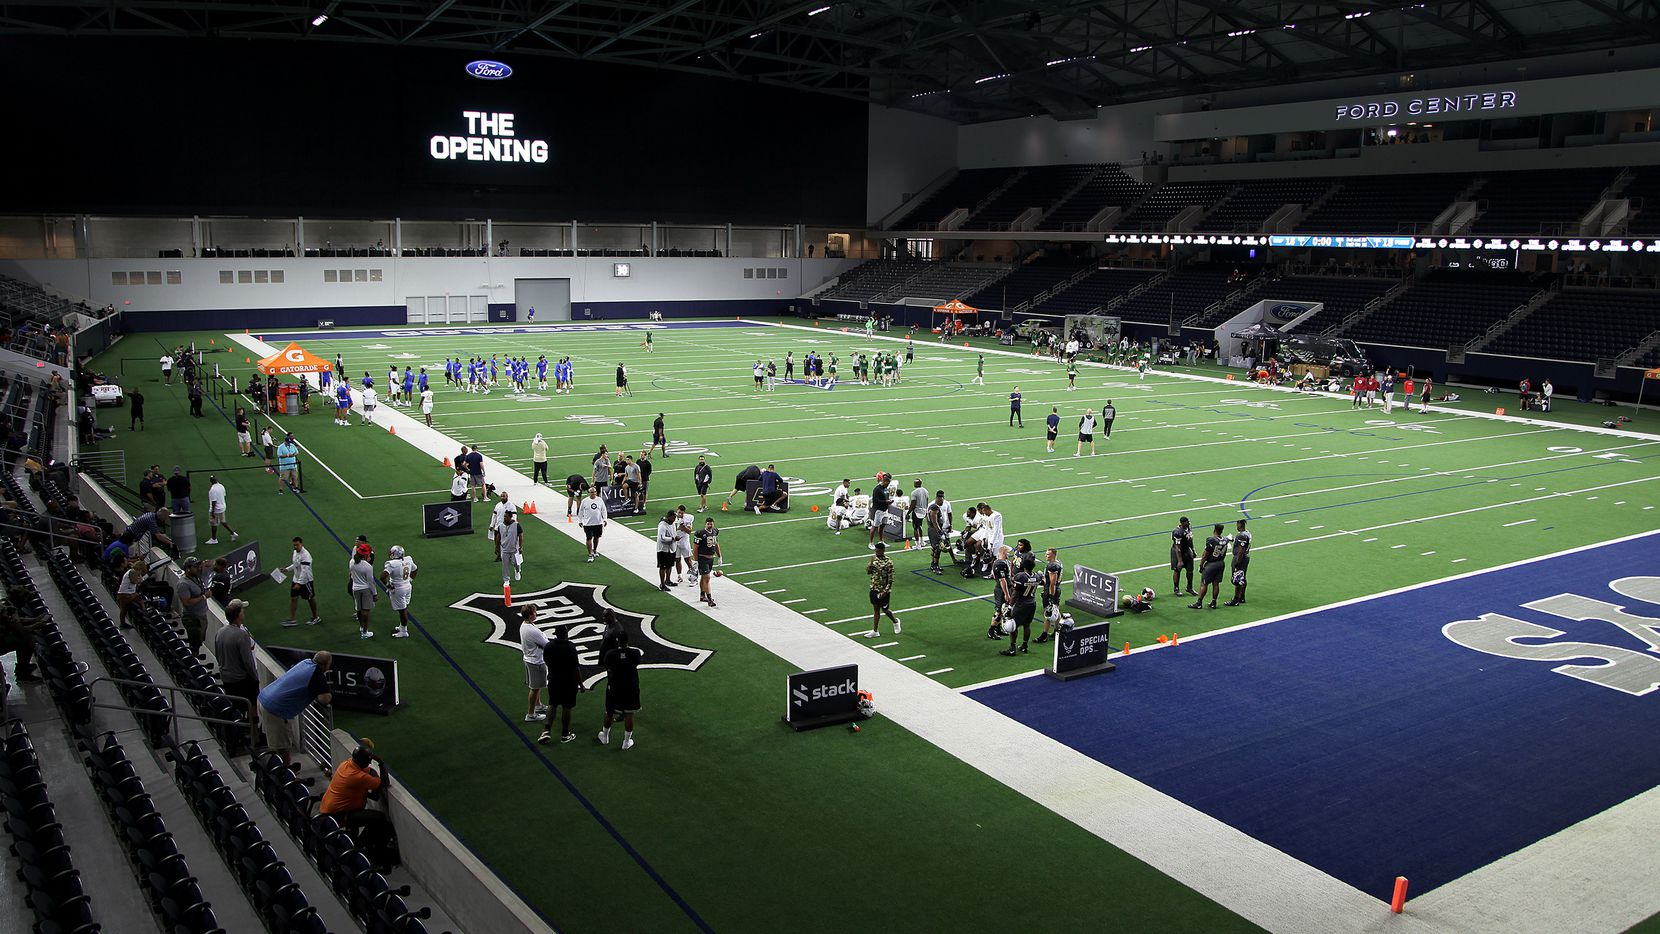 A break in the action at The Opening Finals, a football camp featuring some of the top high school recruits in the country. The final day of the event was held at The Star in Frisco on  Wednesday, July 3, 2019.